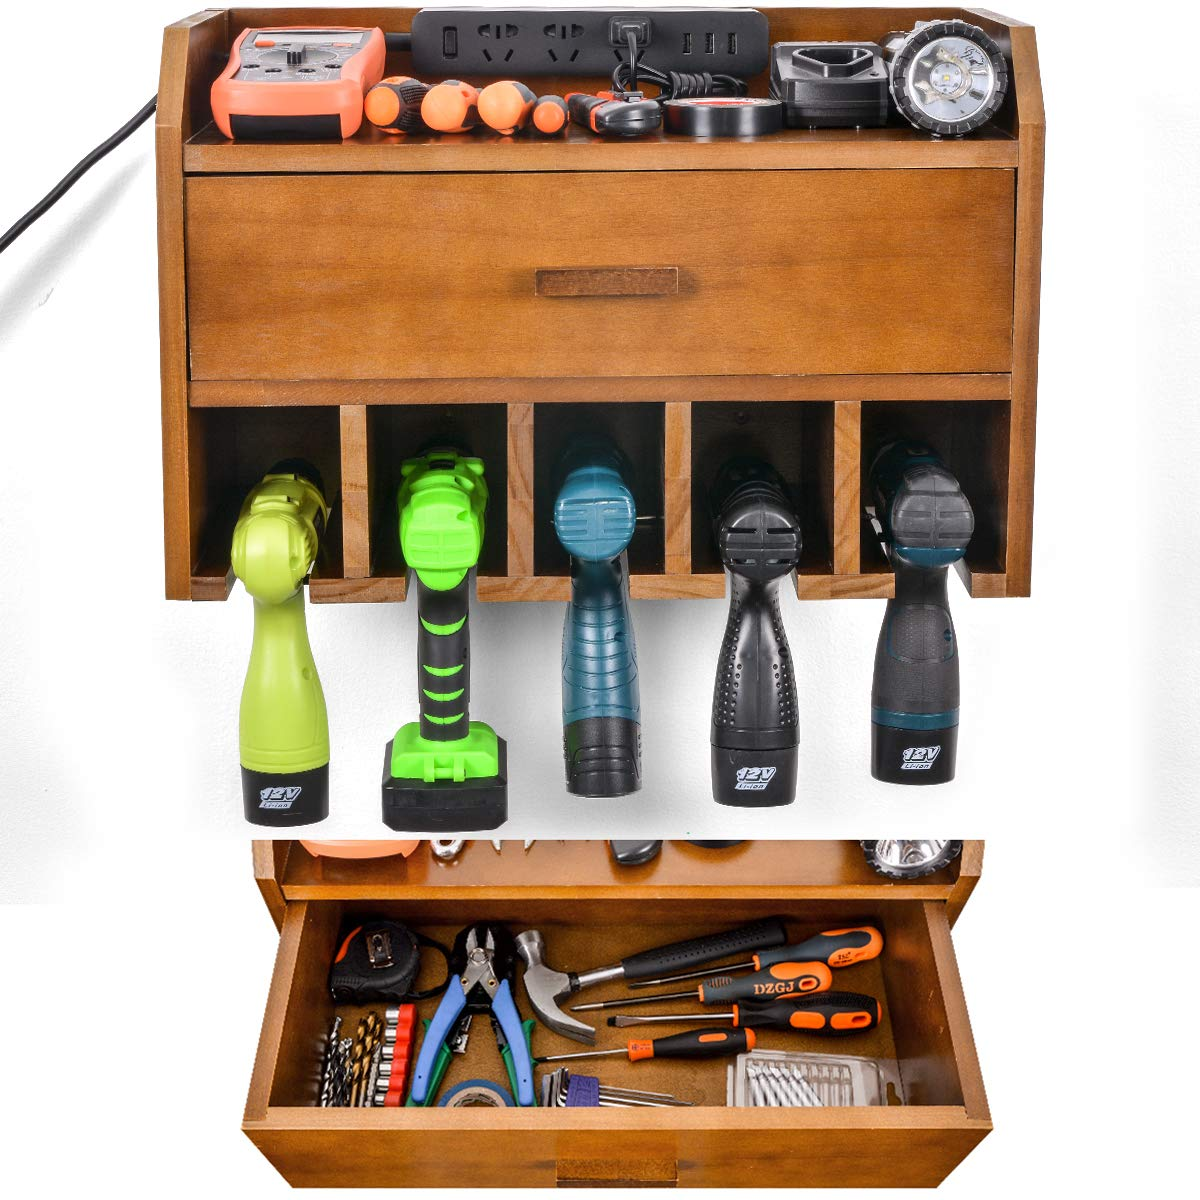 Power-Tool-Organizer-Storage--Garage-Organizer-Drill-Charging-Station--Wooden-Cordless-Drill-Holder-Rack-Wall-Mount-with-Drawer